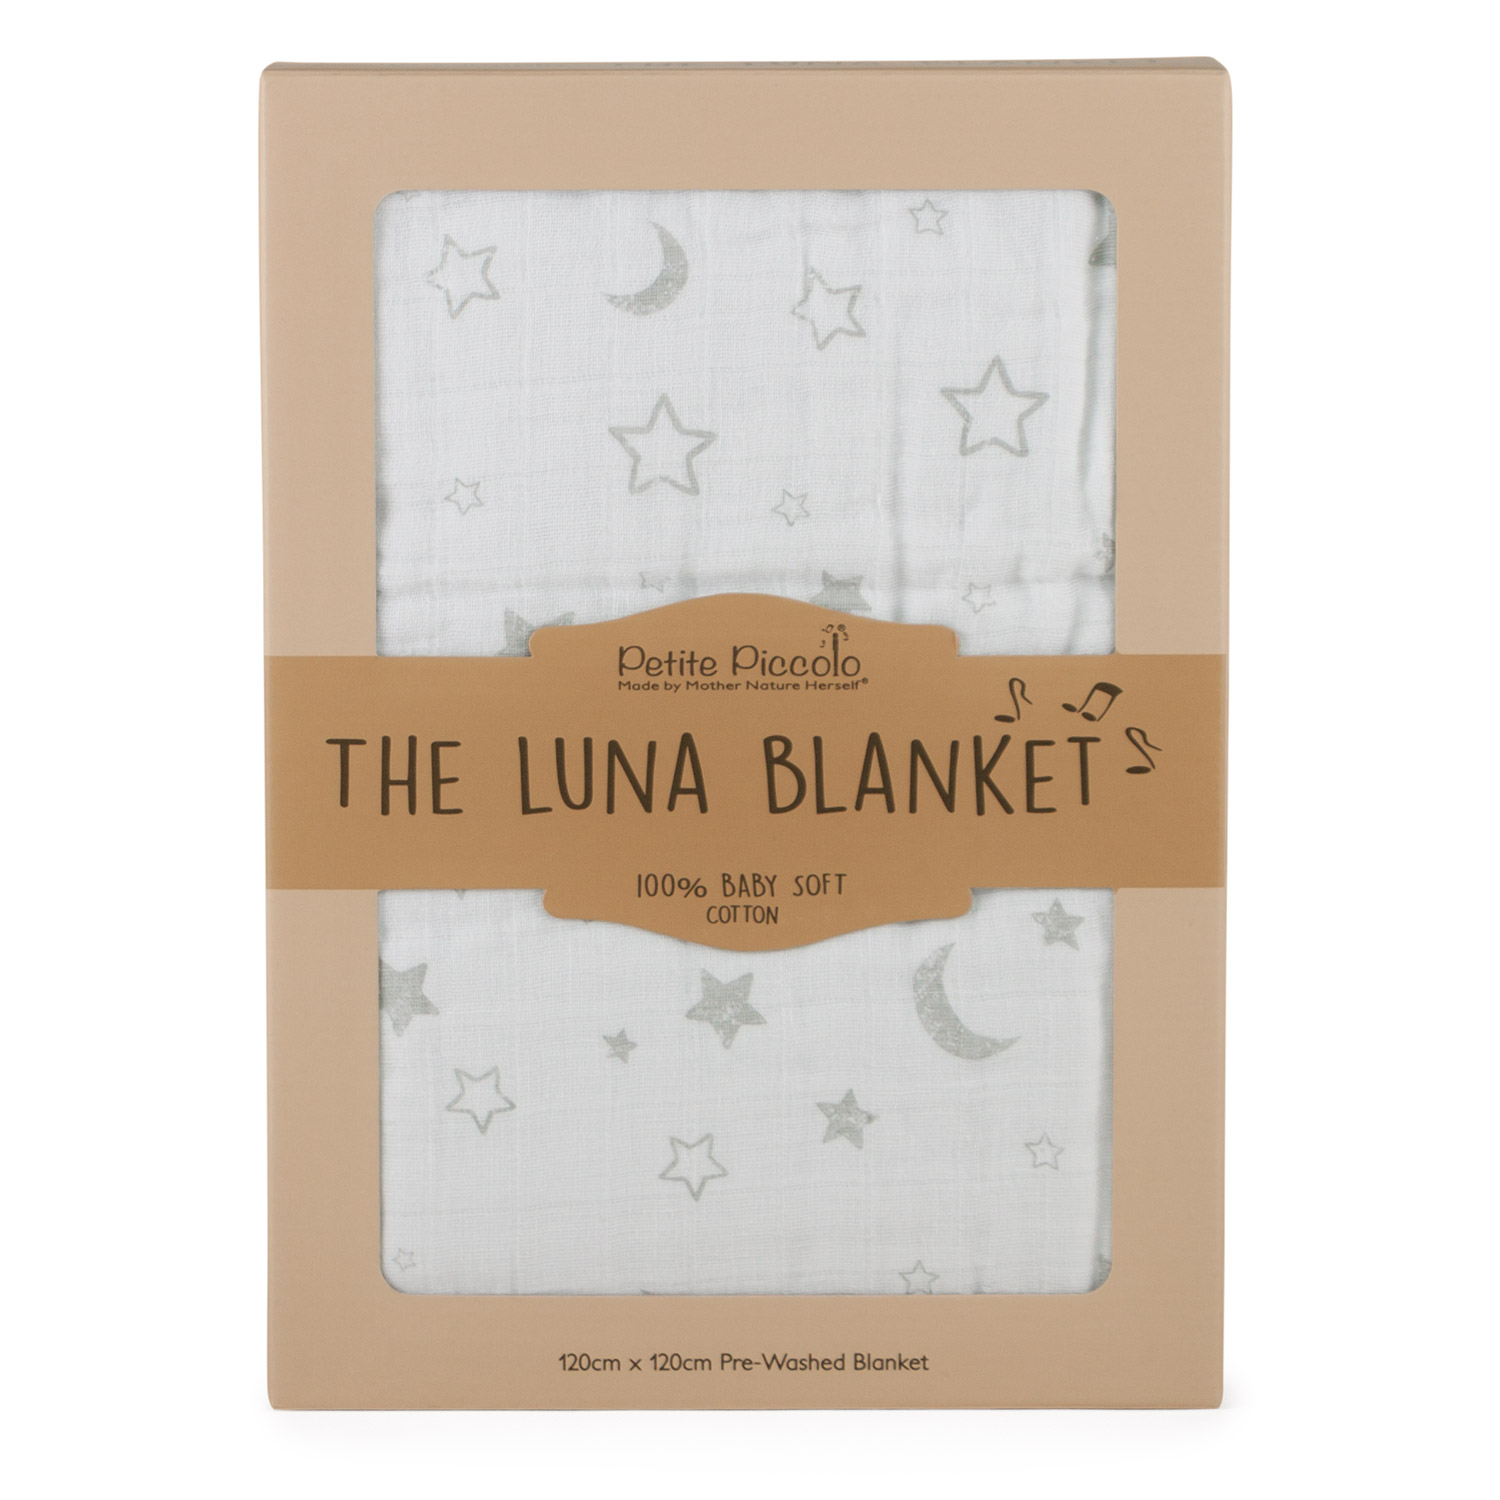 Petite Piccolo The Luna Blanket